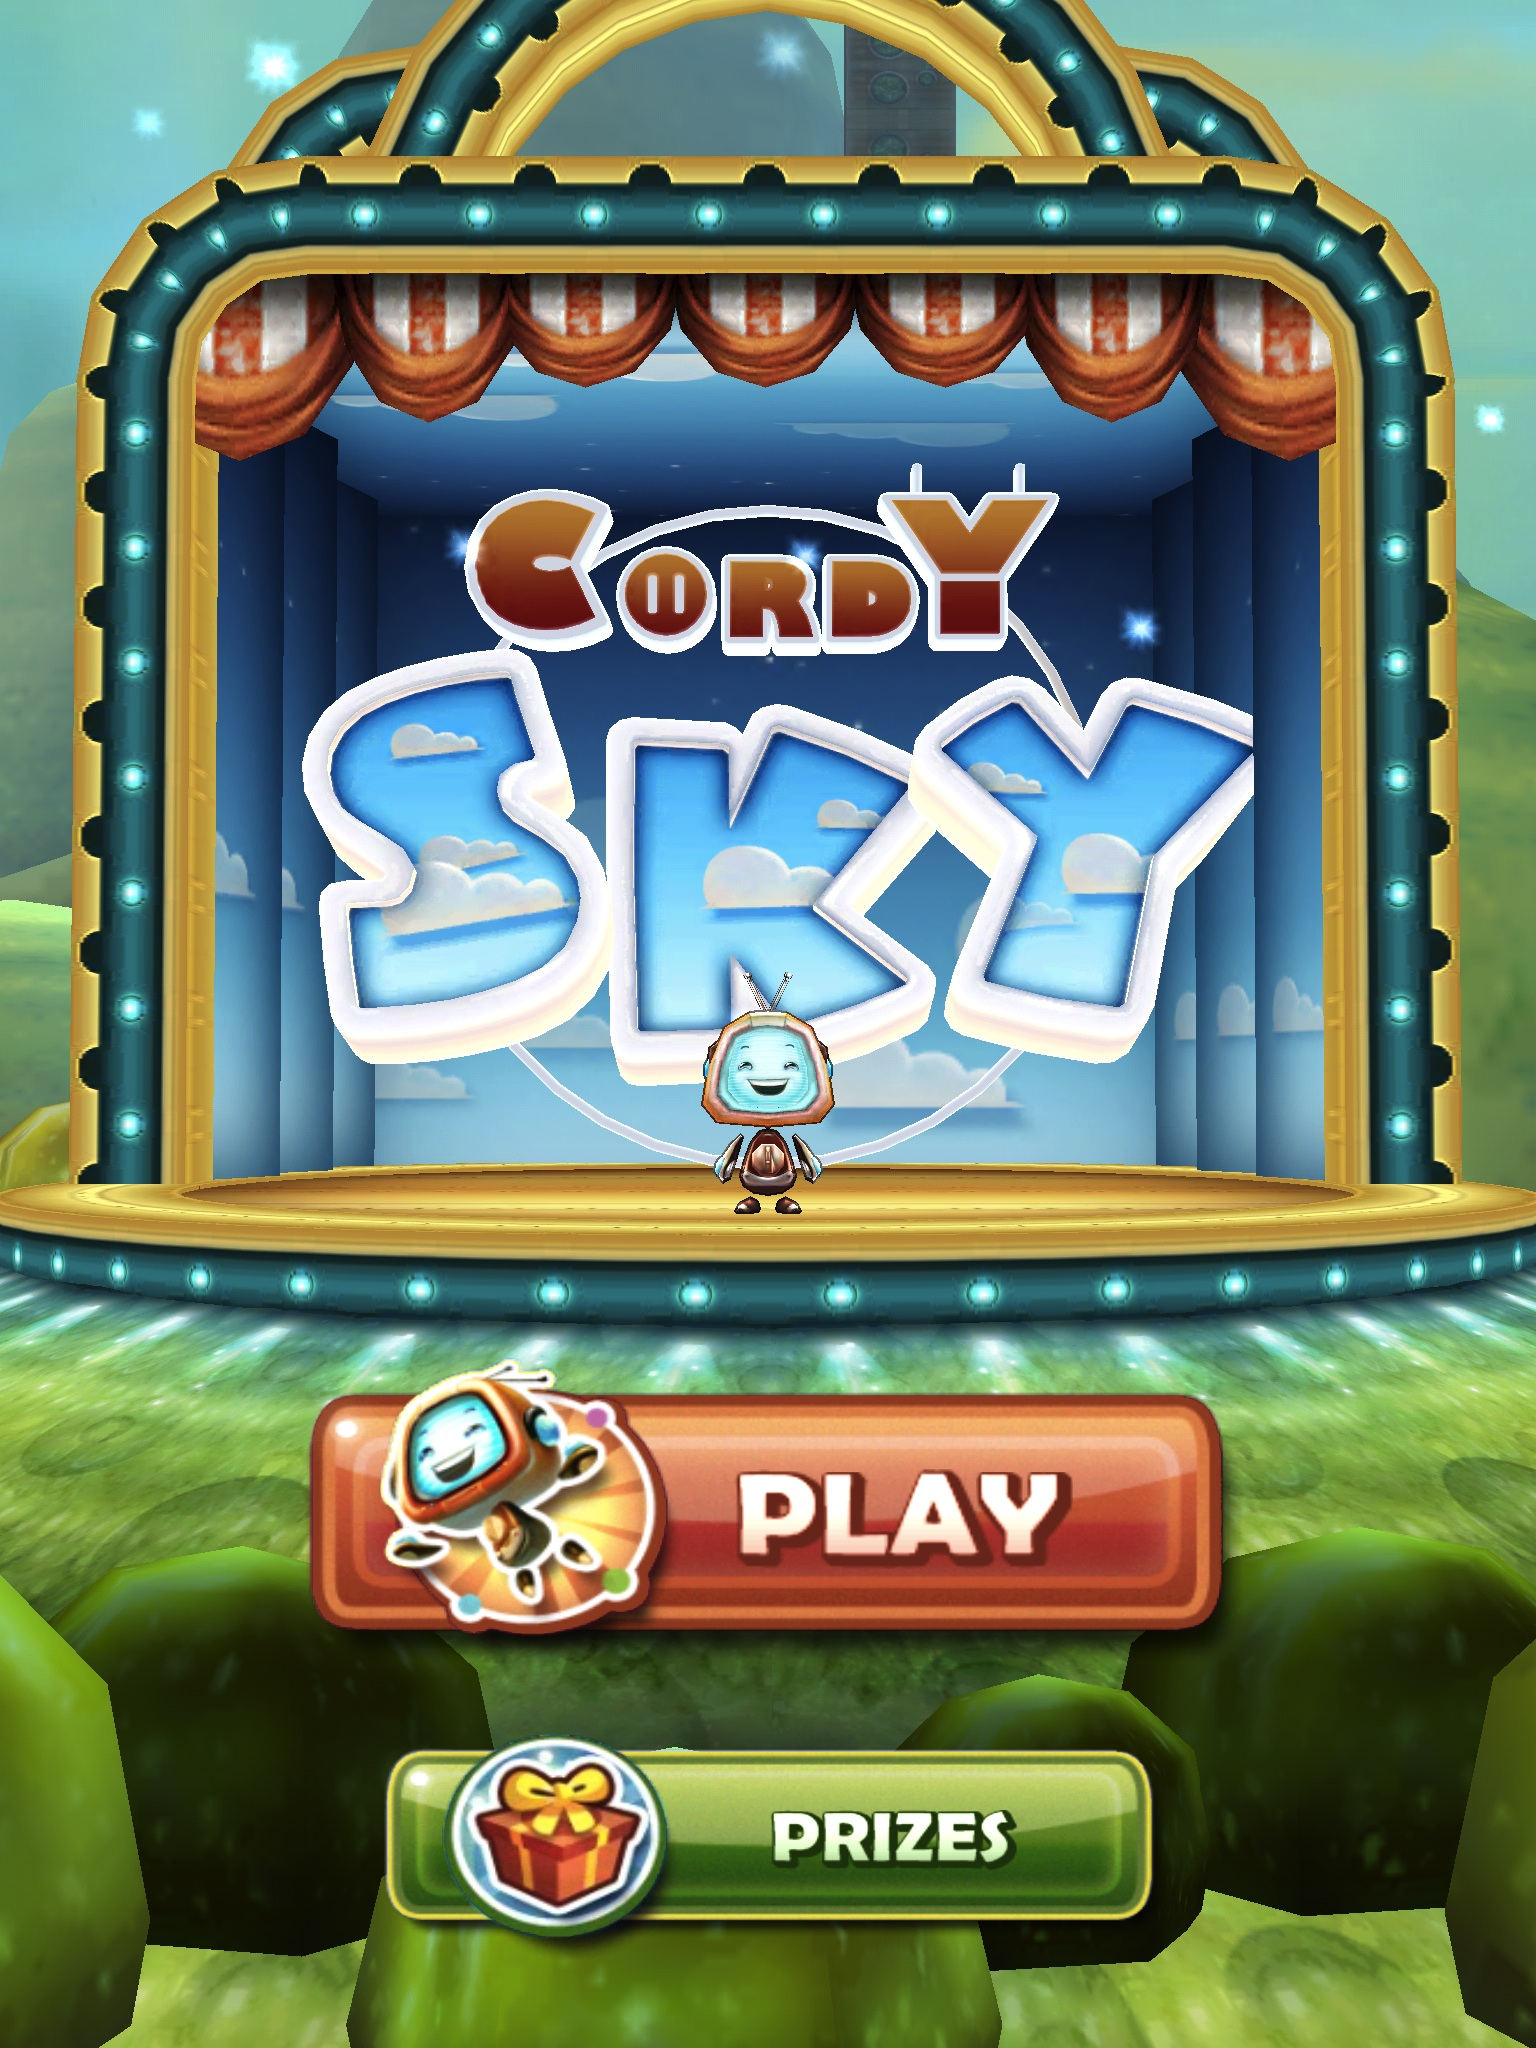 The Sky Is The Limit For The 2.5-D Platforms Of Cordy Sky